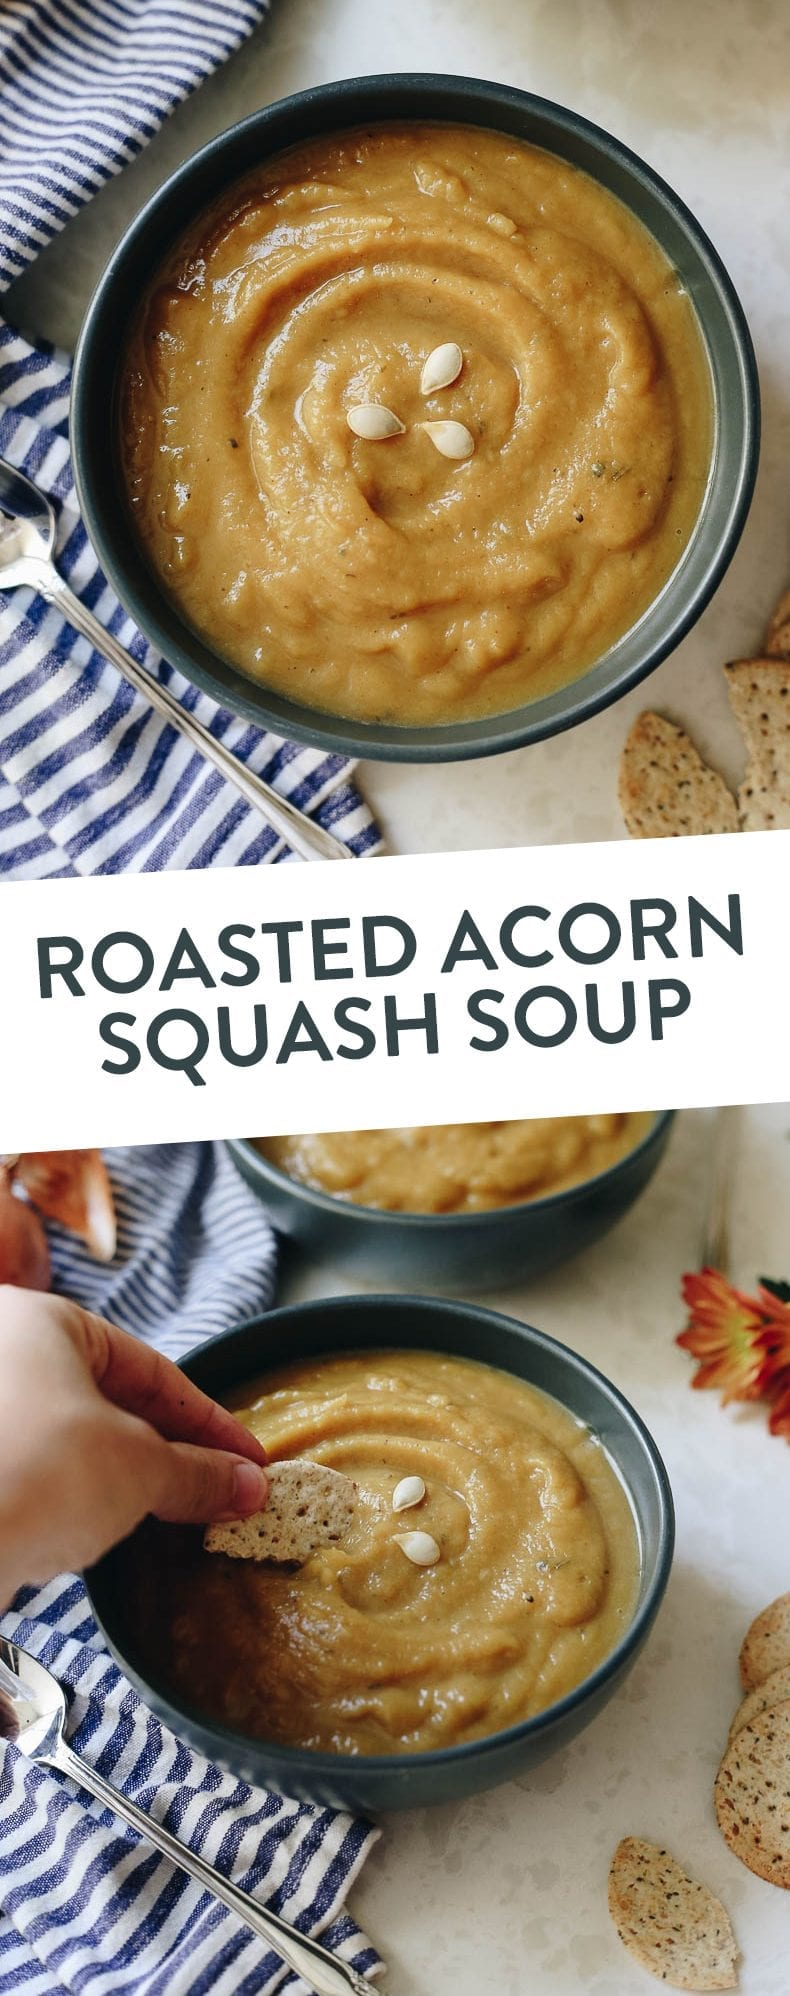 This healthy, autumn Roasted Acorn Squash Soup is sweet and savory with a lightly roasted flavor to make a delicious and filling fall recipe for the whole family.